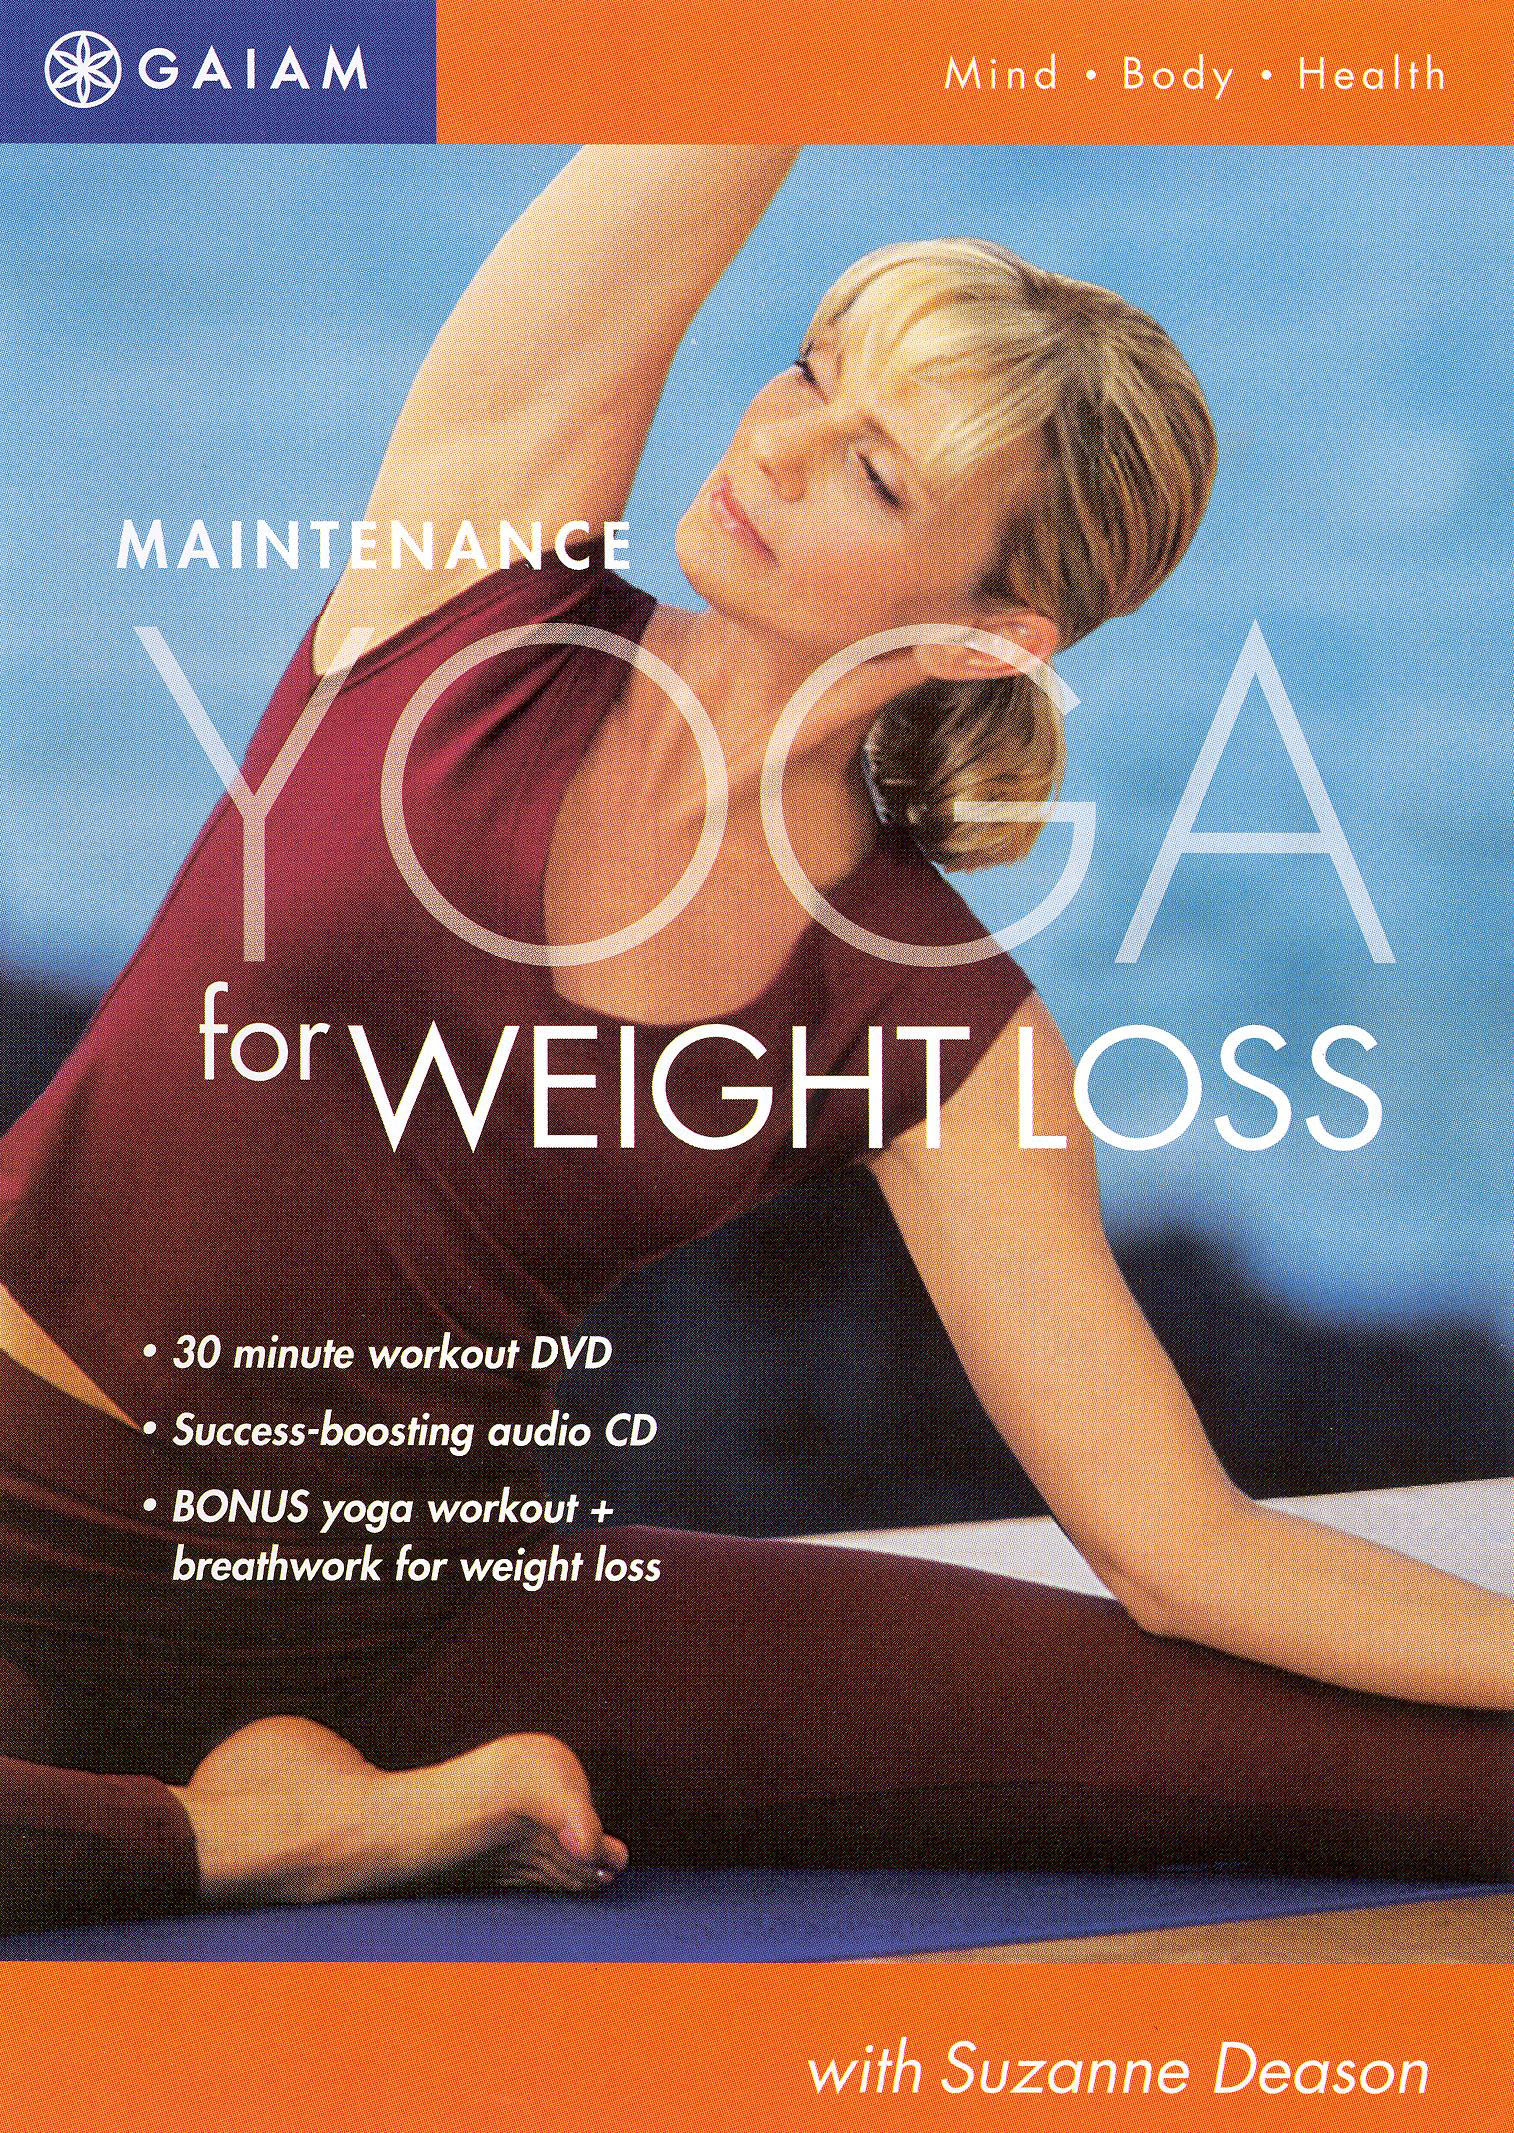 Maintenance Yoga for Weight Loss